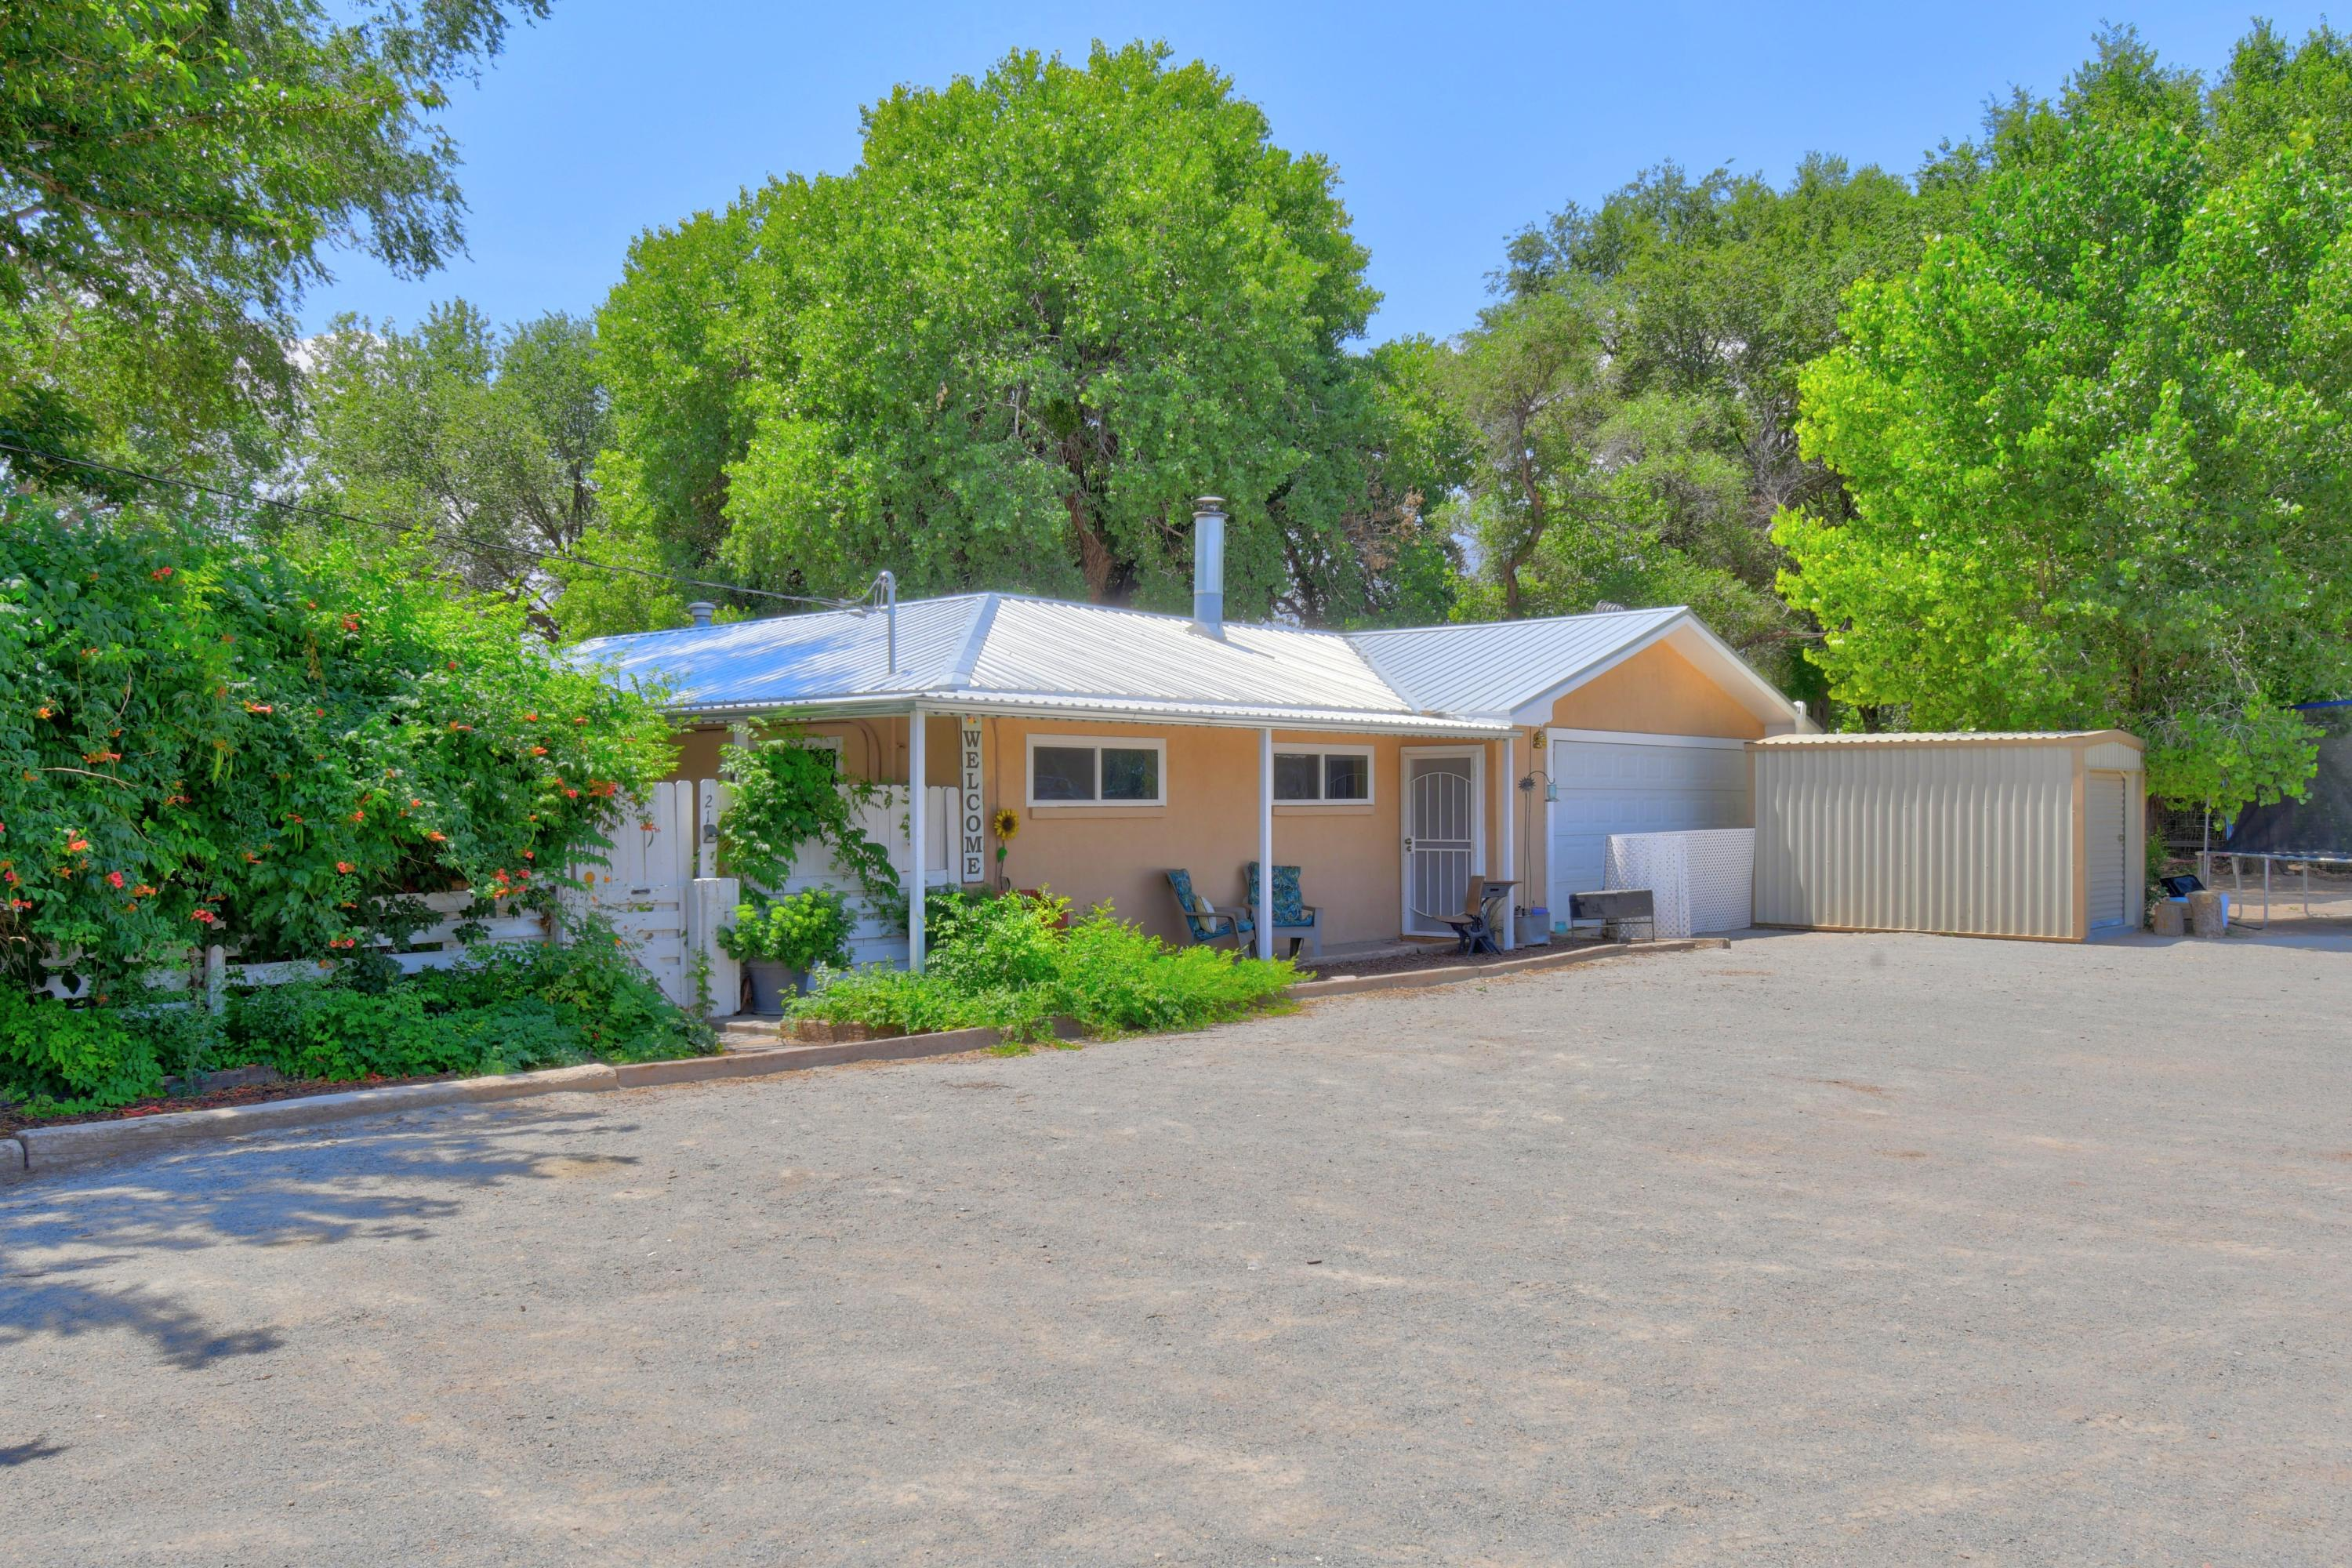 21 COYOTE Road Property Picture 9